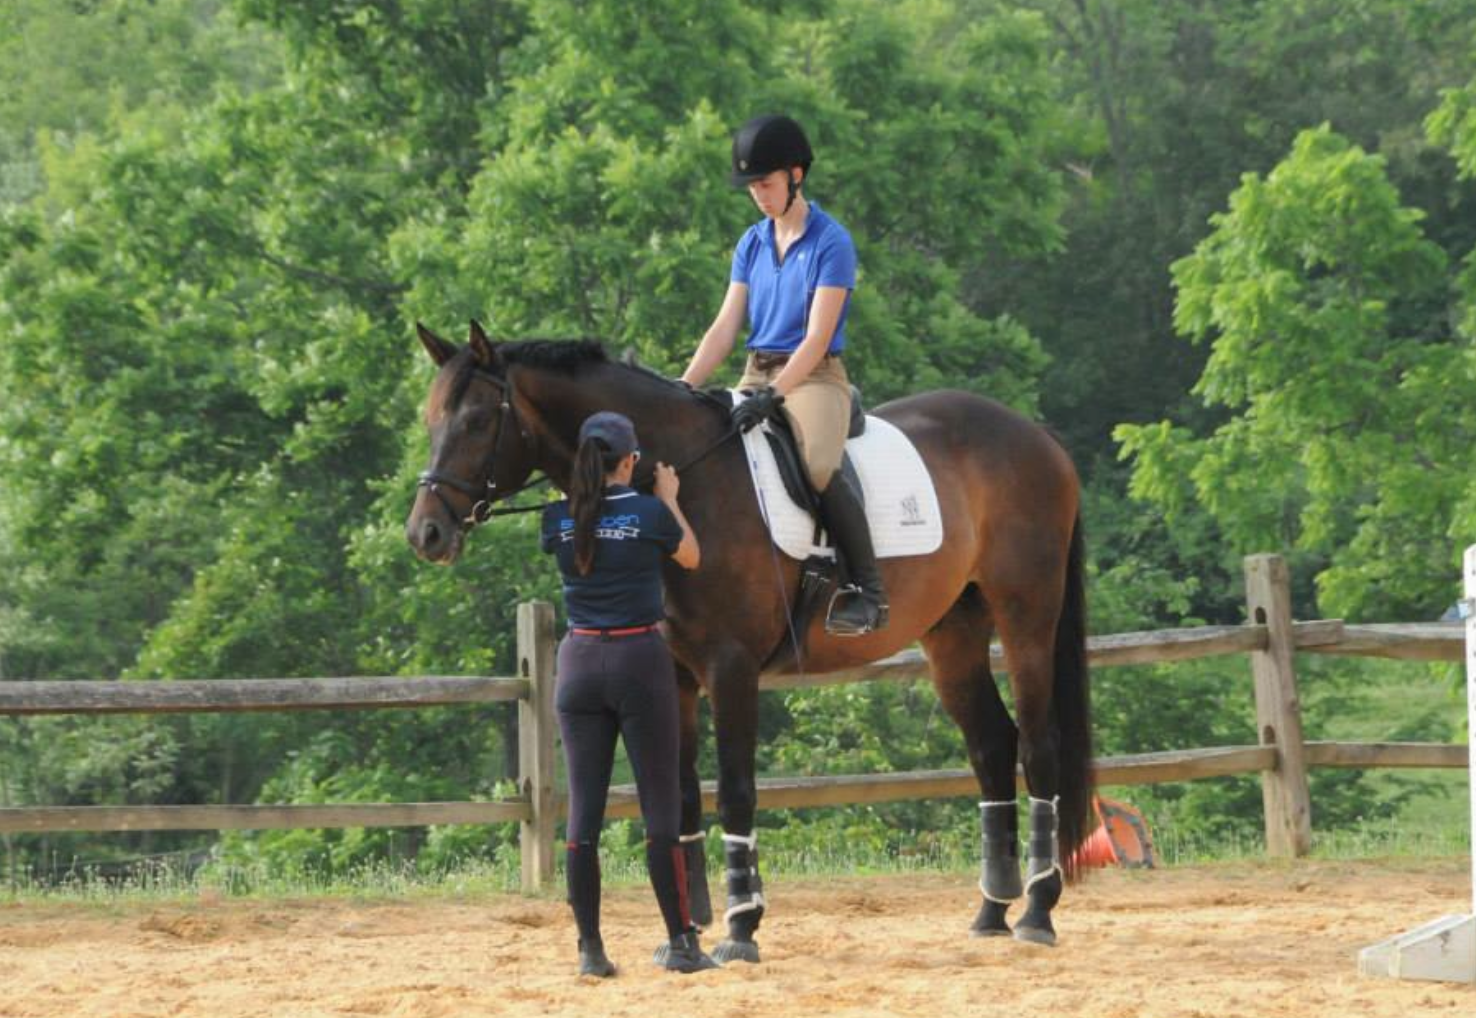 Kate Chadderton helps members learn how to train their horses to make improvements. Photo by Gillian Warner.